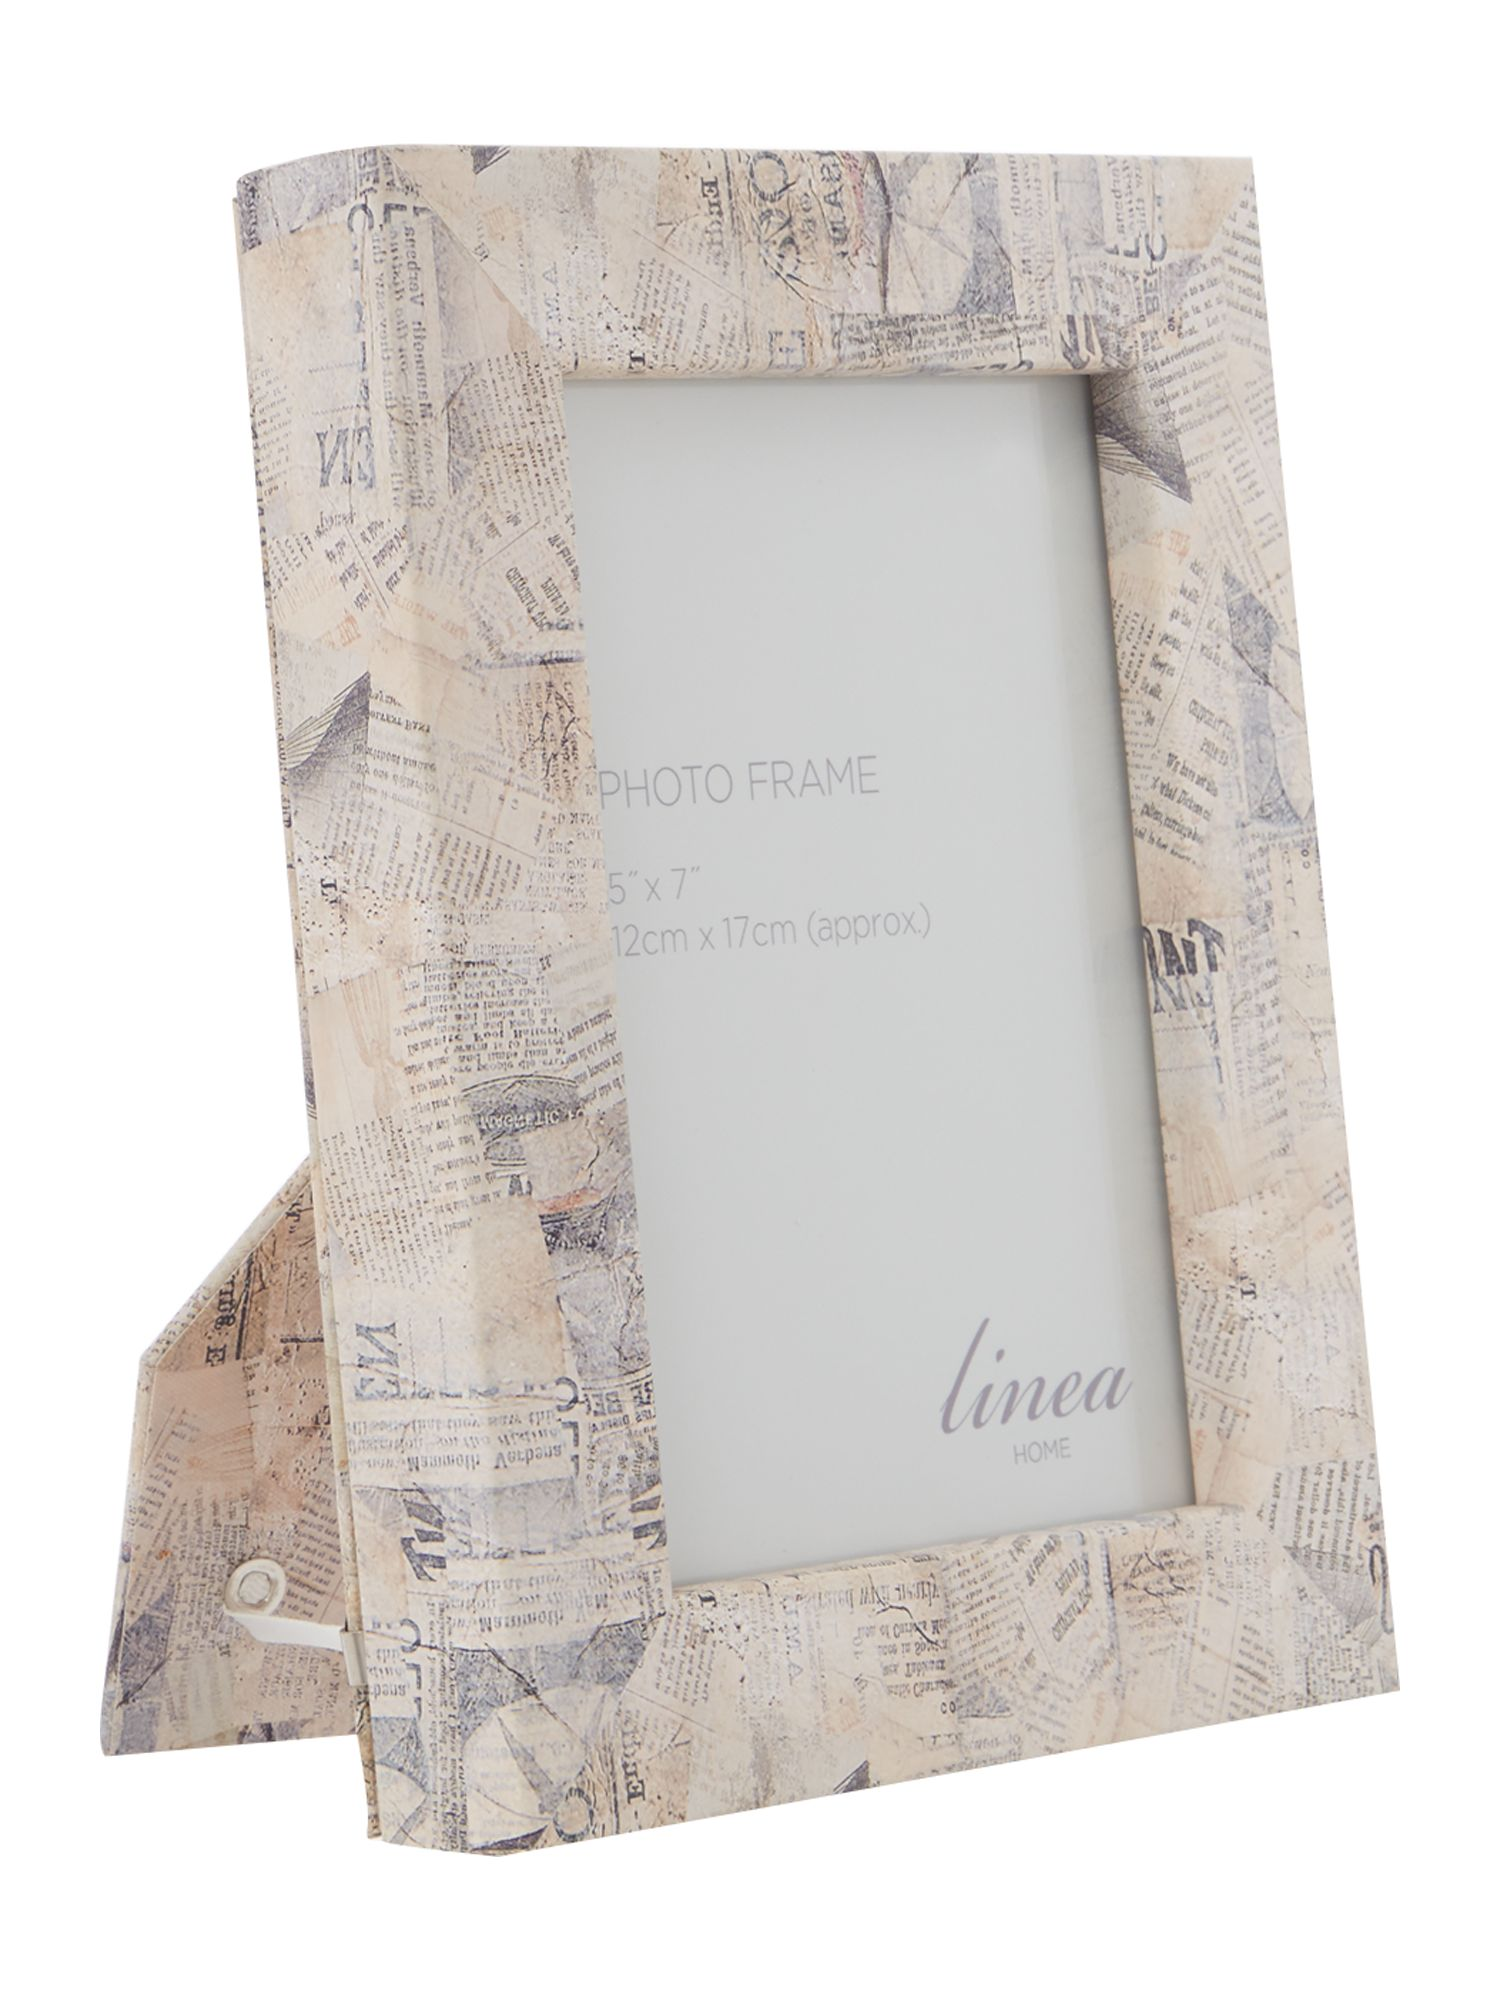 Newspaper print photo frame 5 x 7